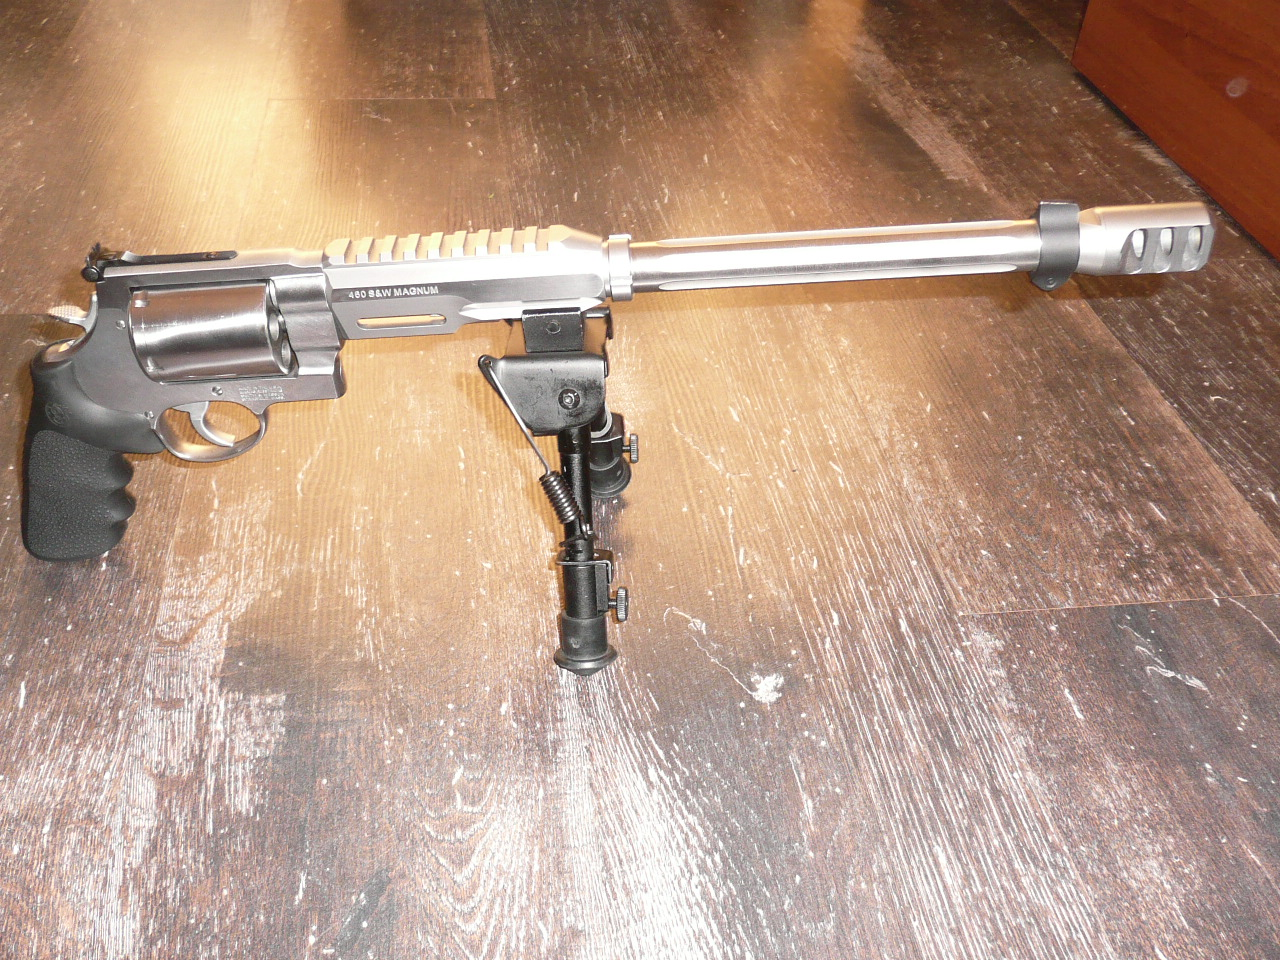 Smith & Wesson model 460XVR ™